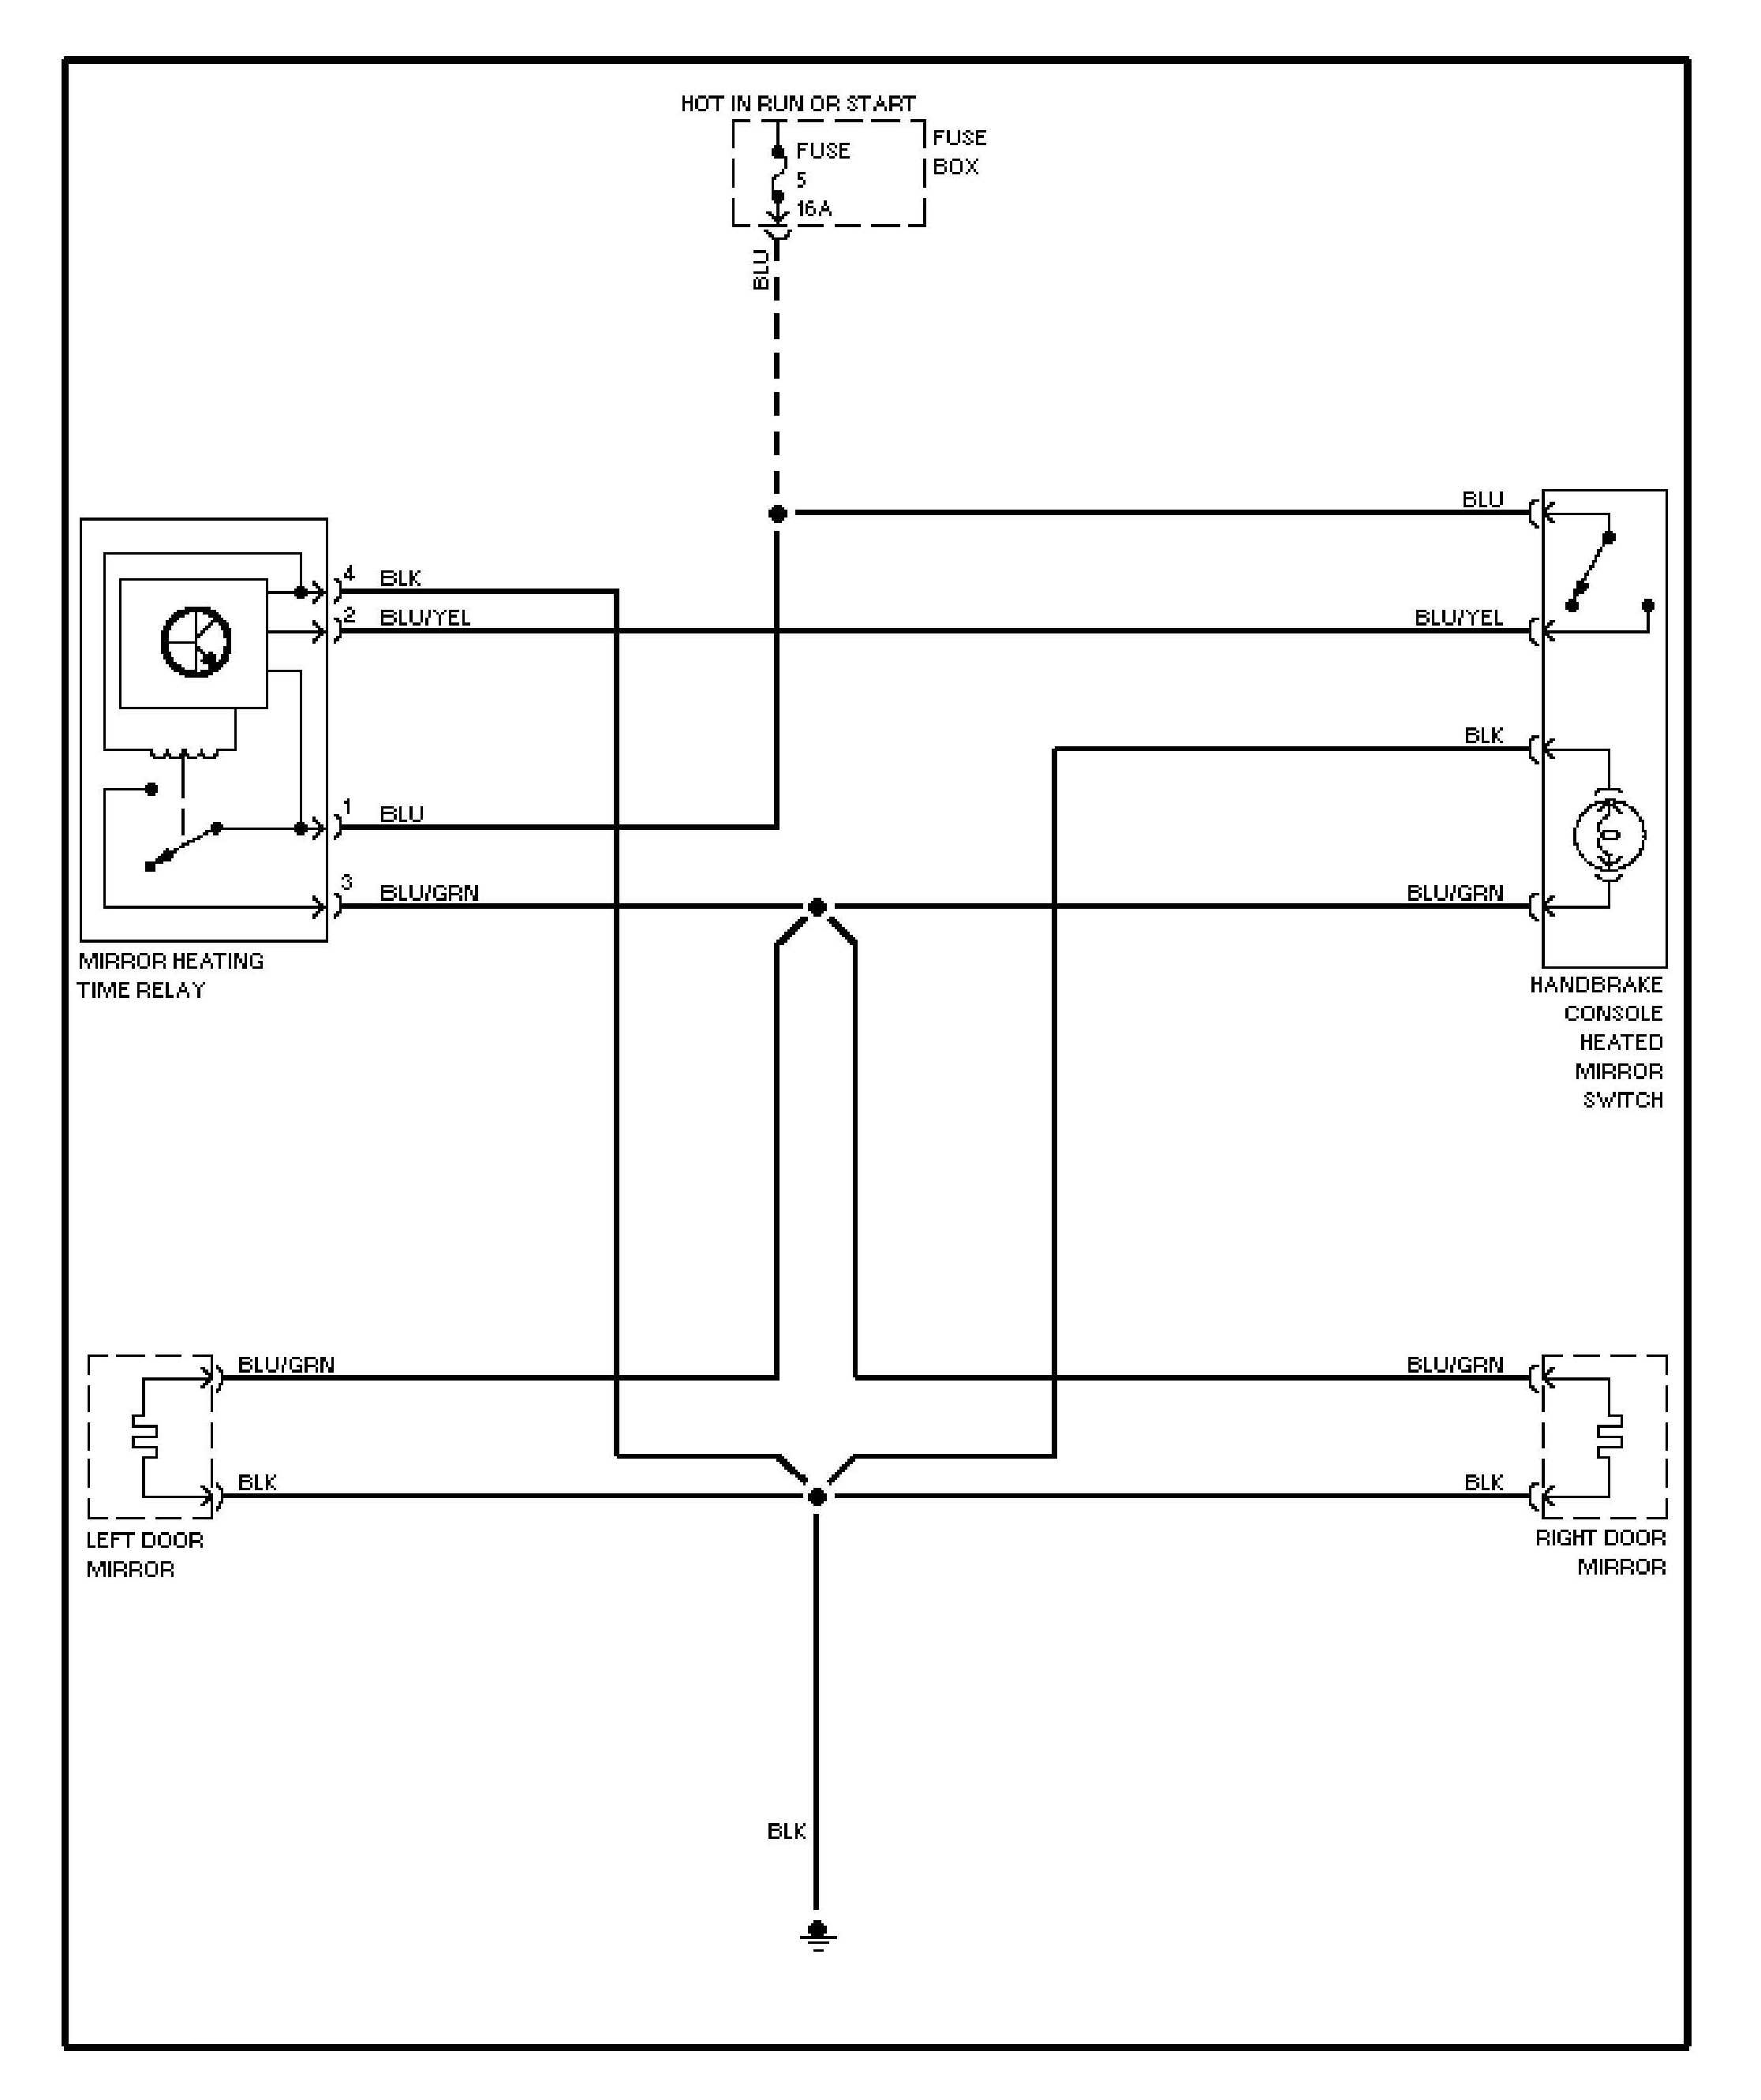 1993 Volvo 240 Radio Wiring Diagram : Volvo wiring diagrams heated mirrors